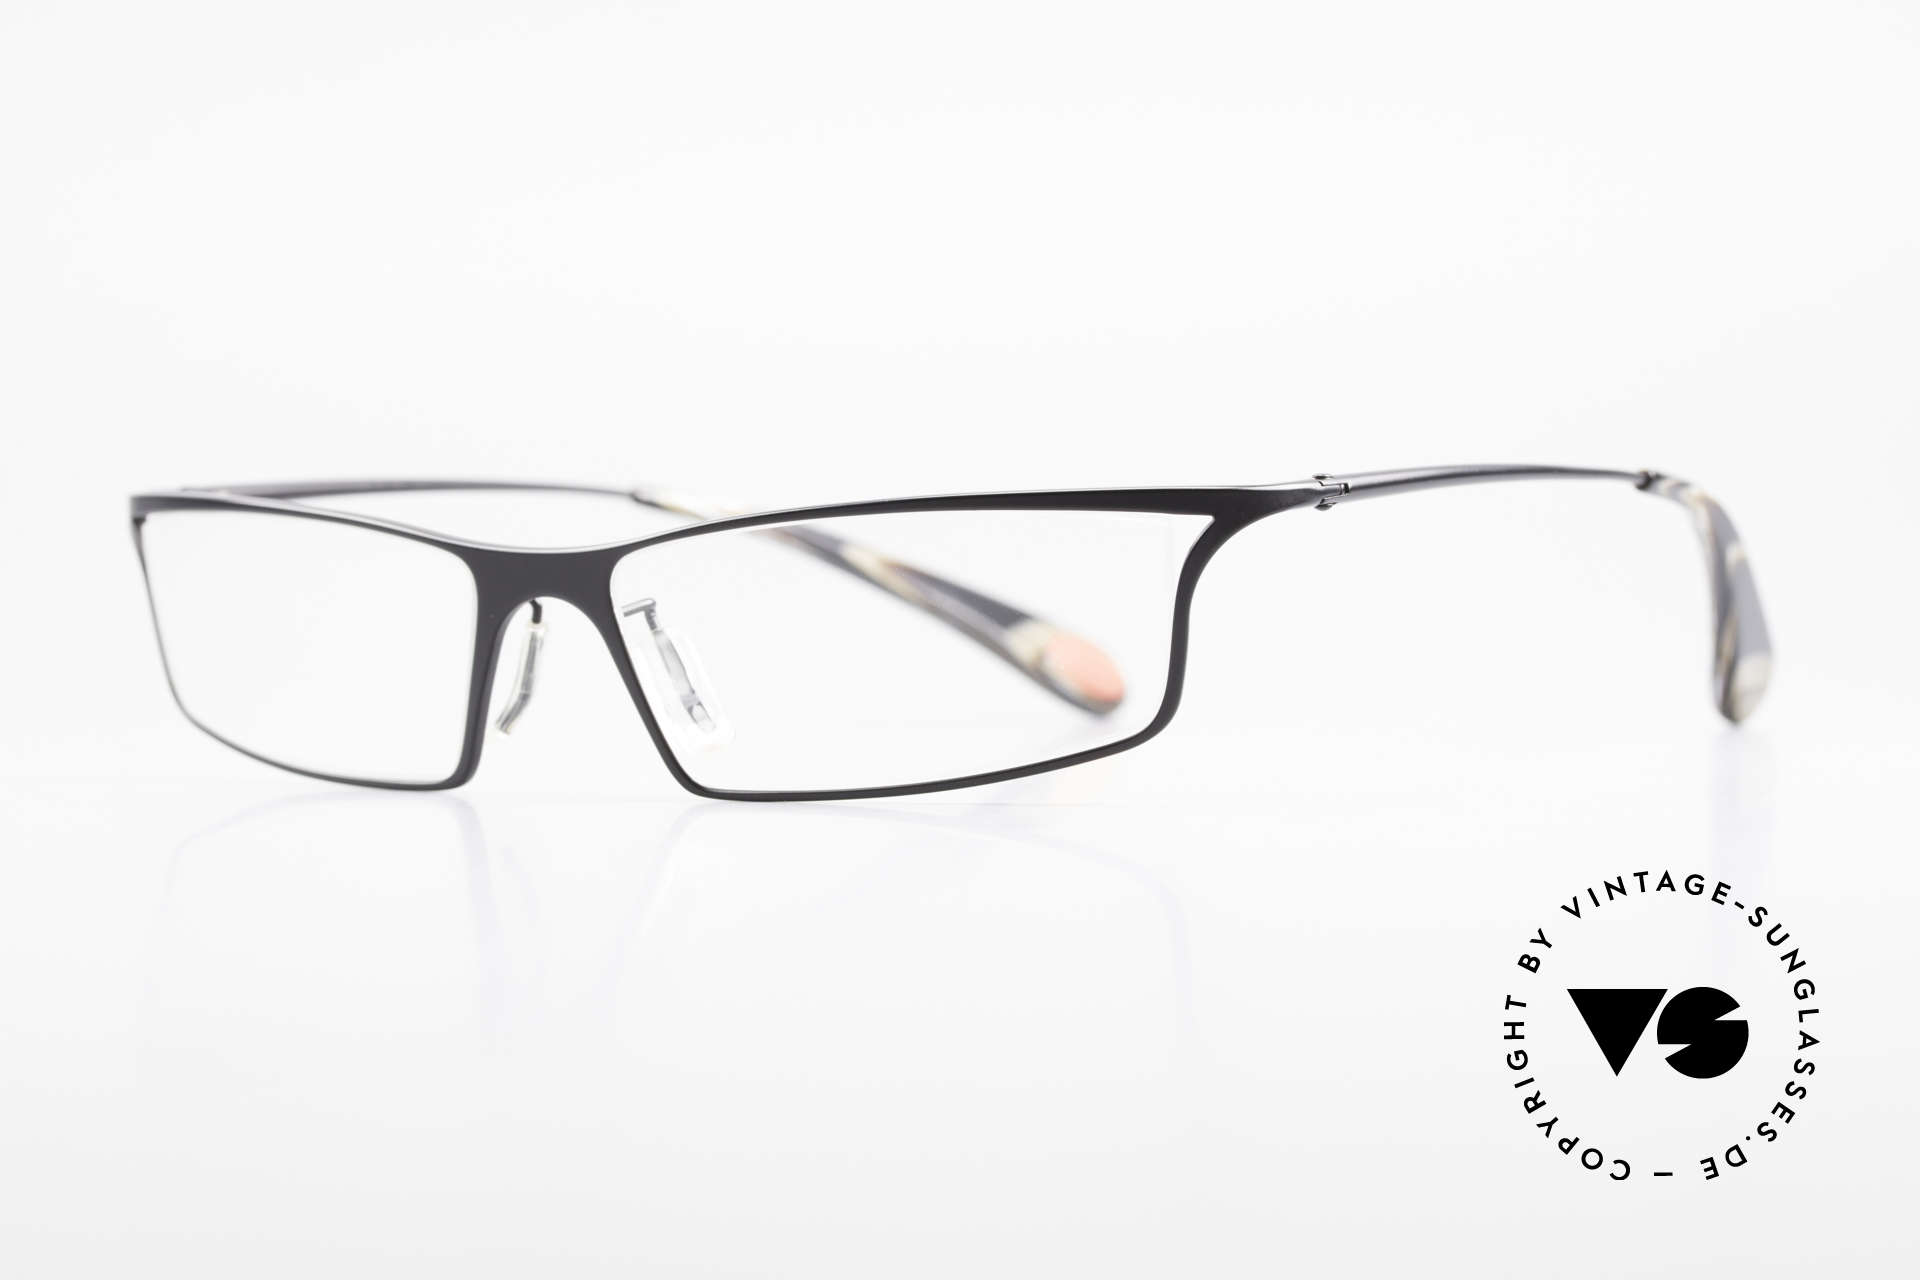 Bugatti 352 Odotype Heston Blumenthal Spectacles, ergonomic metal frame with spring hinges, Made for Men